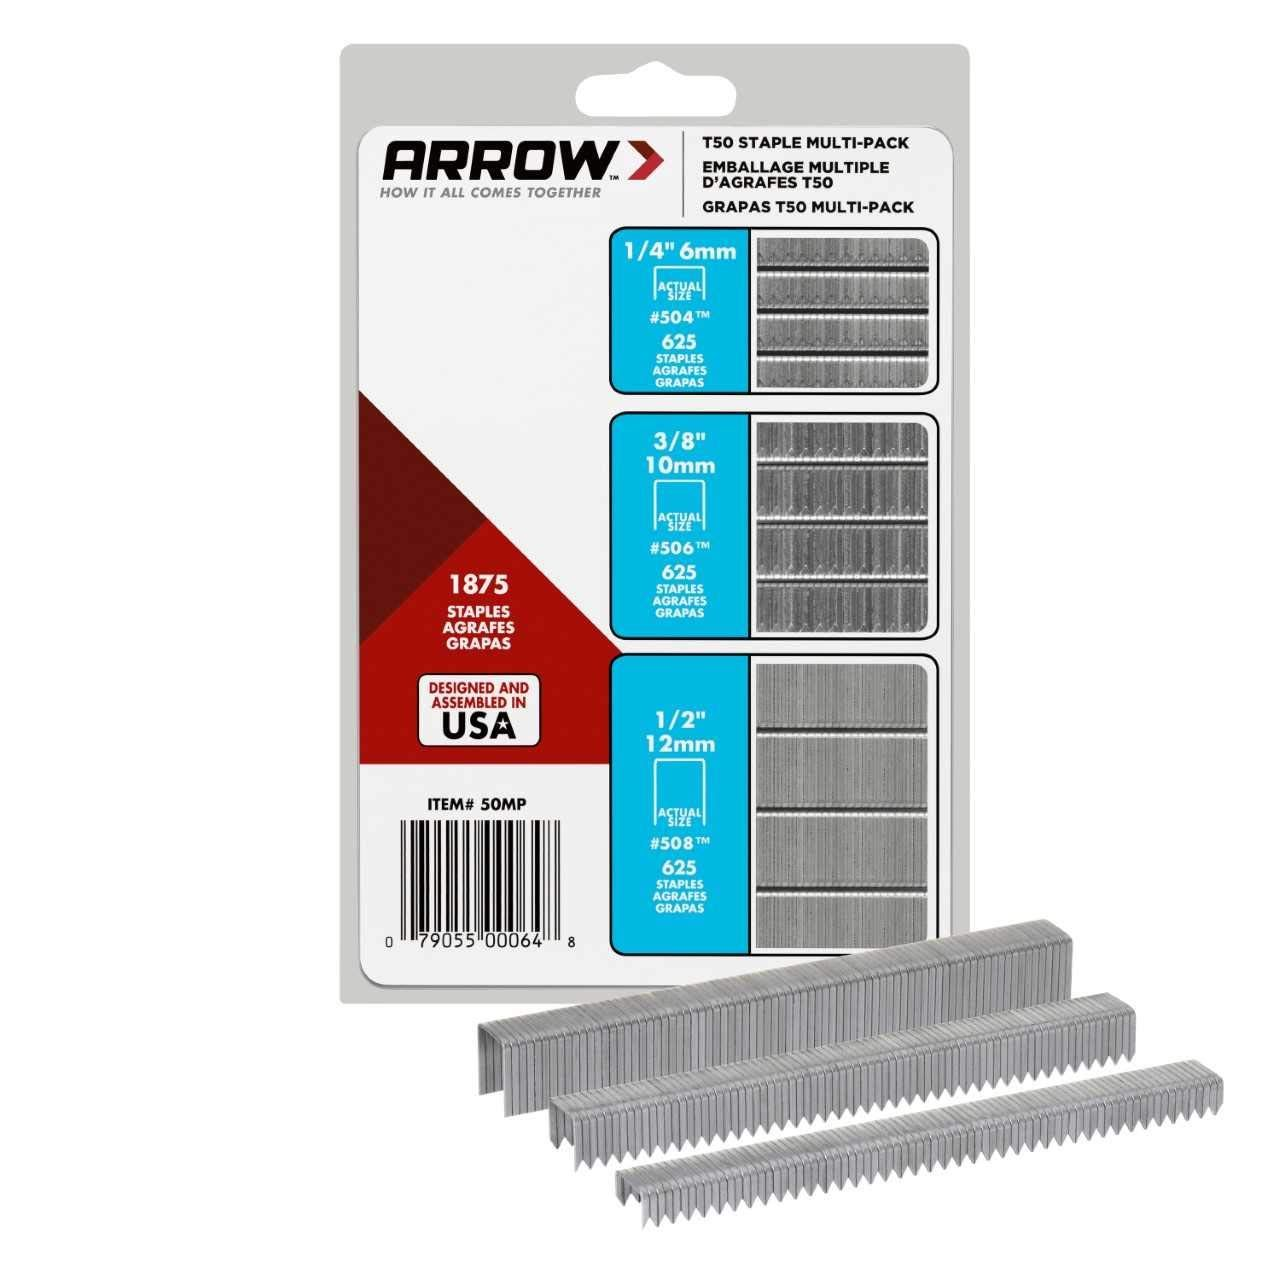 Arrow T50 Staples 50mp 3 Pack Ad Staples Sponsored Arrow Pack Mp With Images Multi